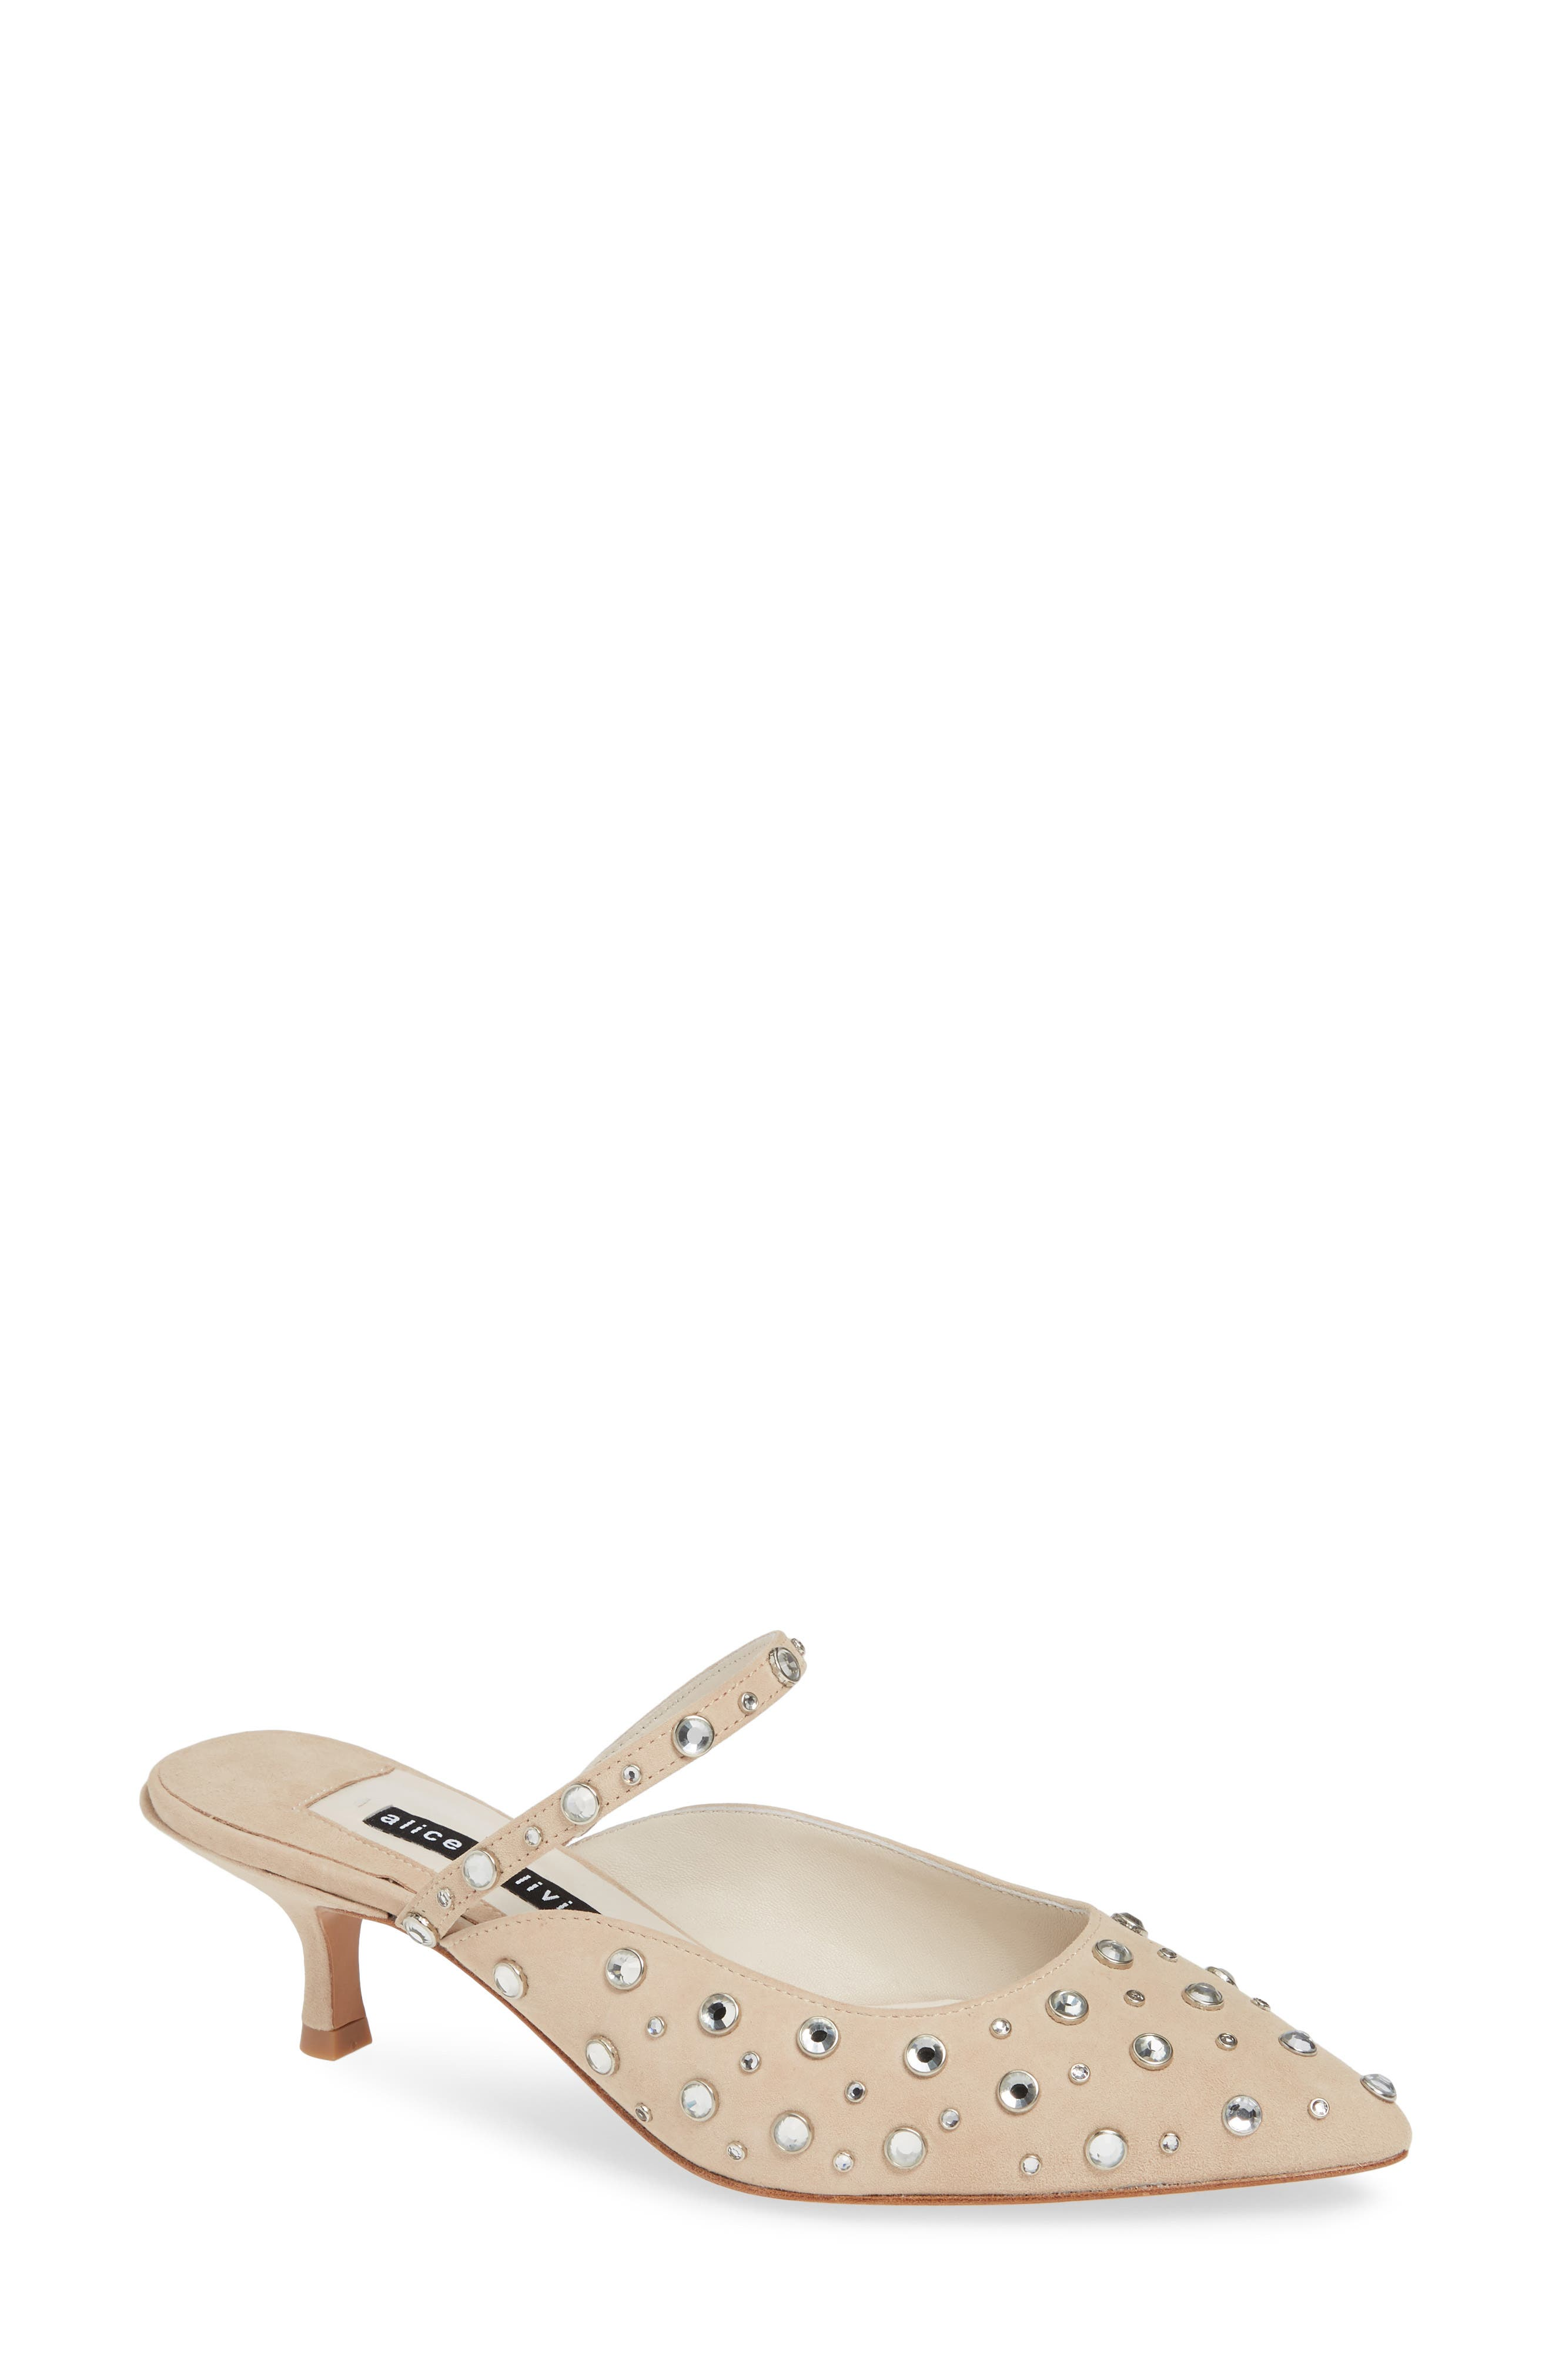 Margo Mirror-Studded Kitten Pumps in Nude